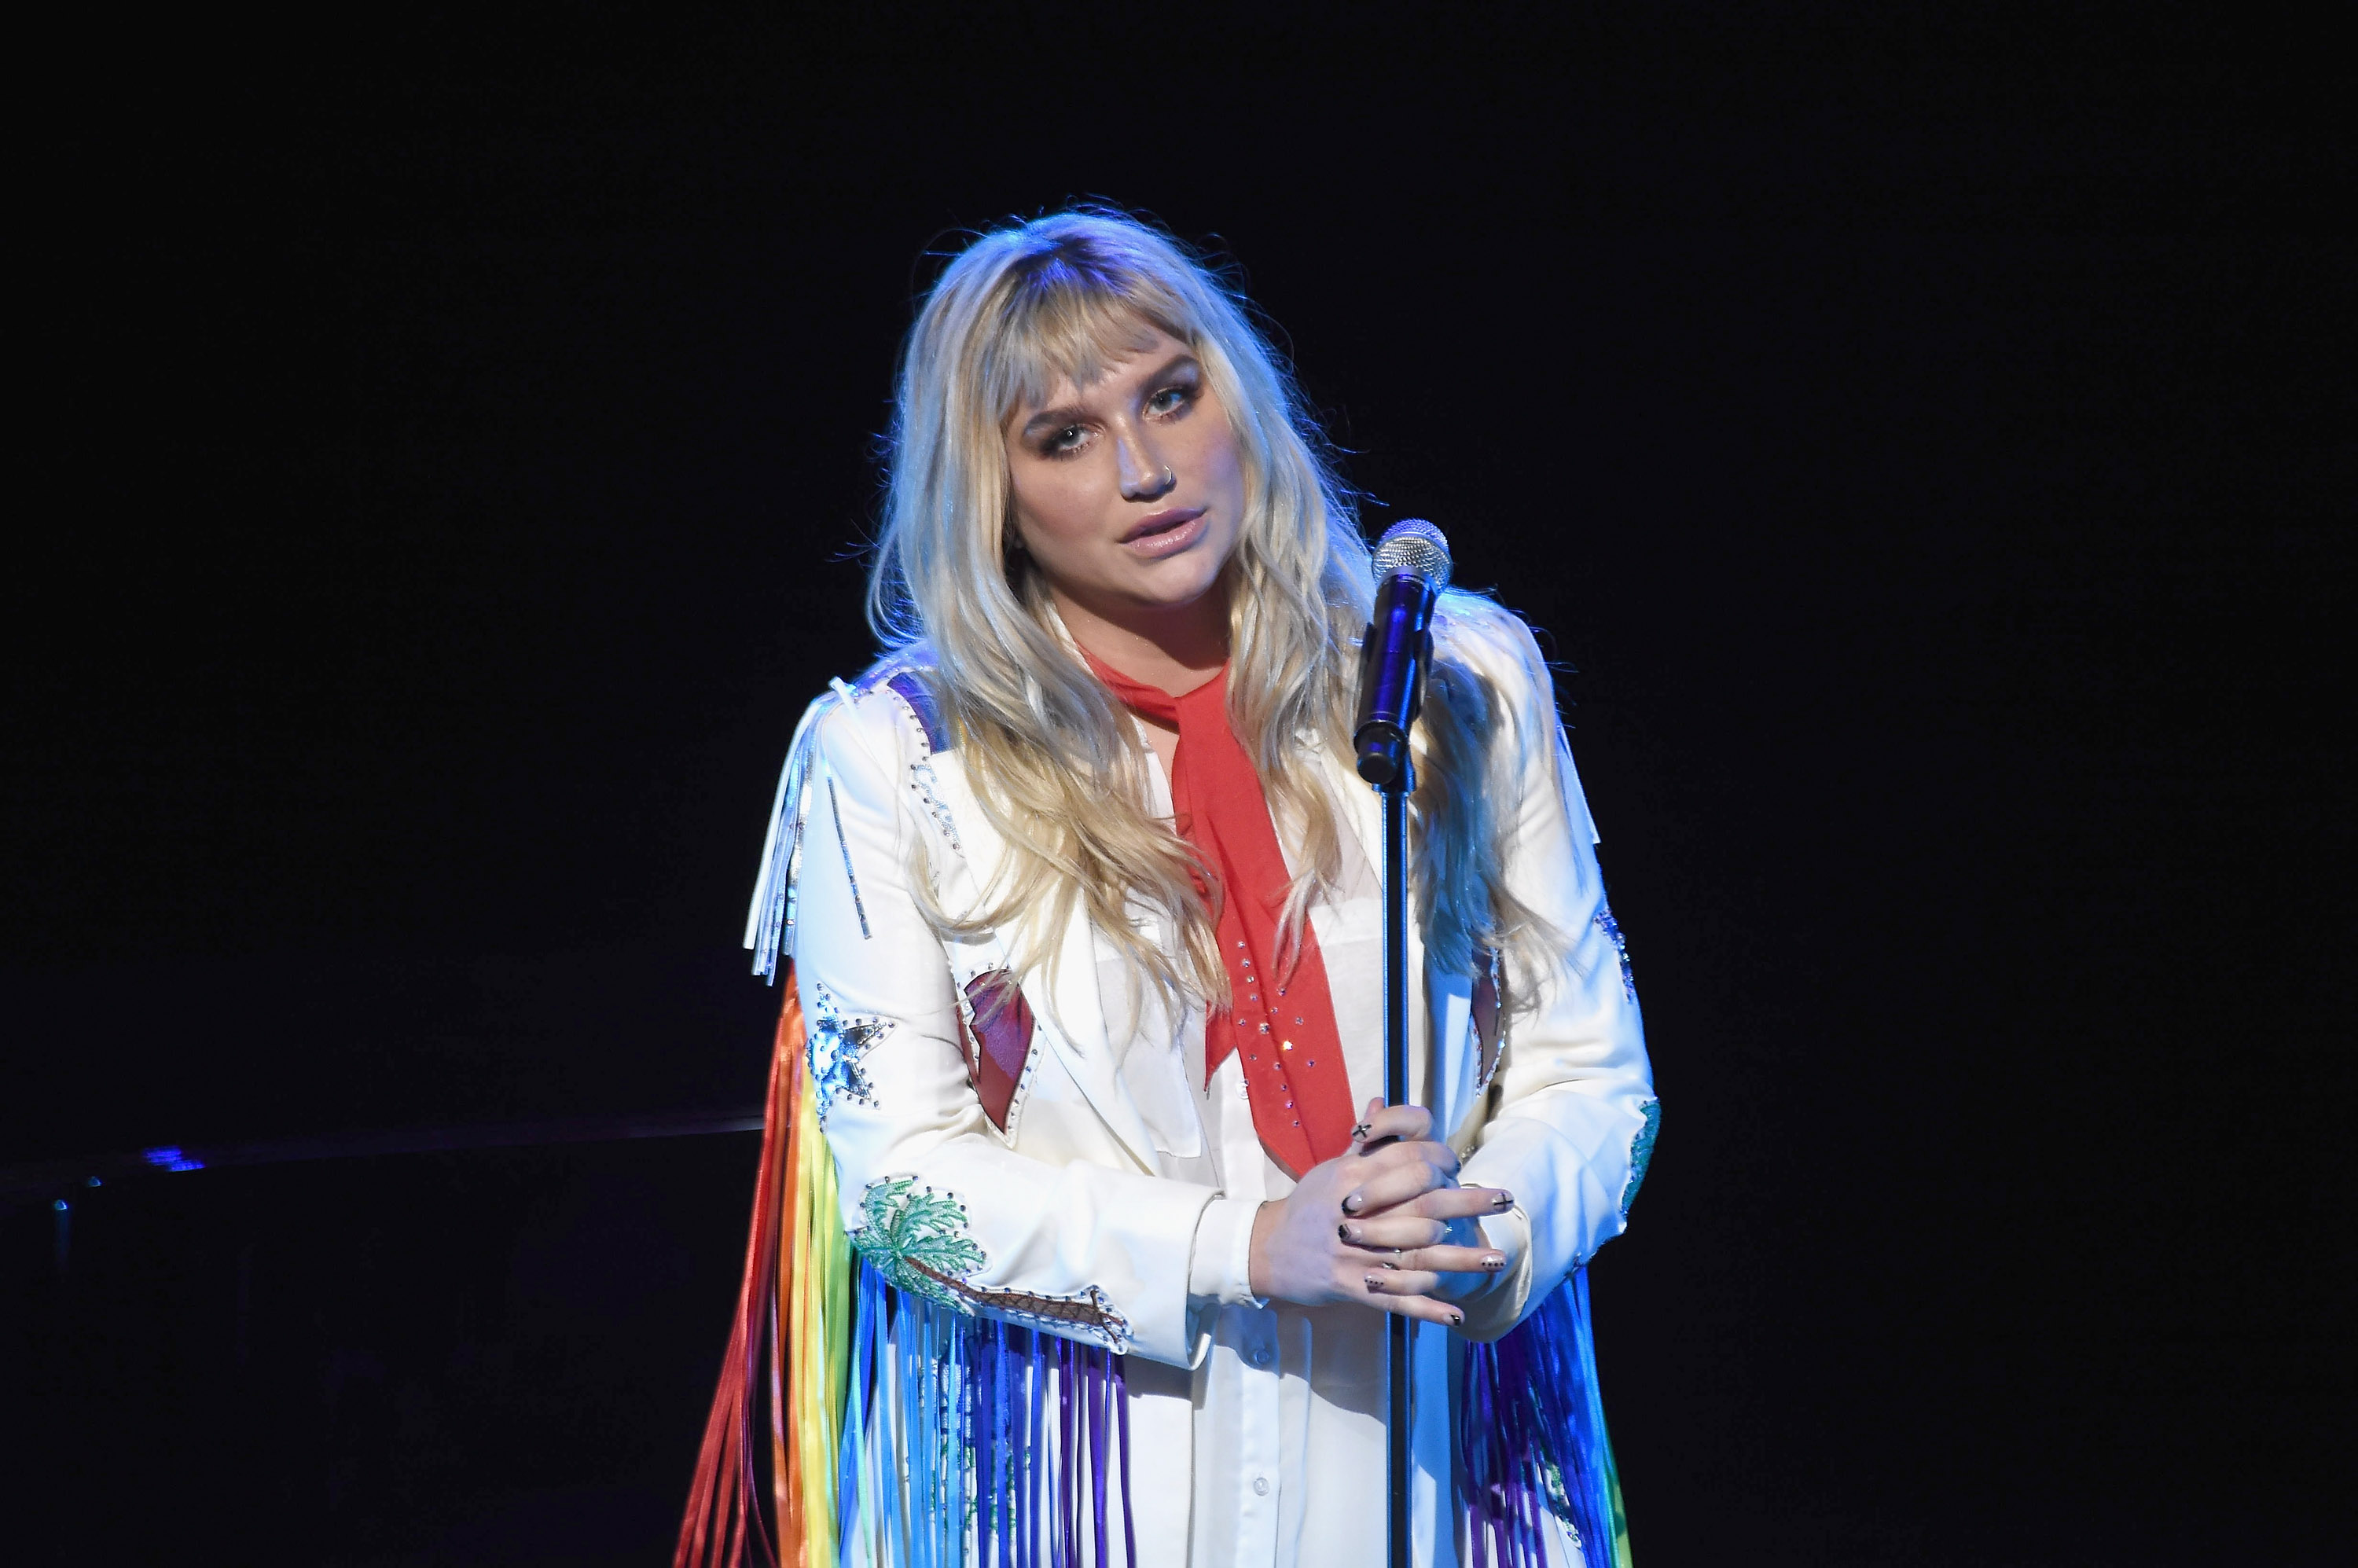 Kesha thanked her fans in a super powerful speech on Thursday, and WE'RE WITH YOU GIRL!